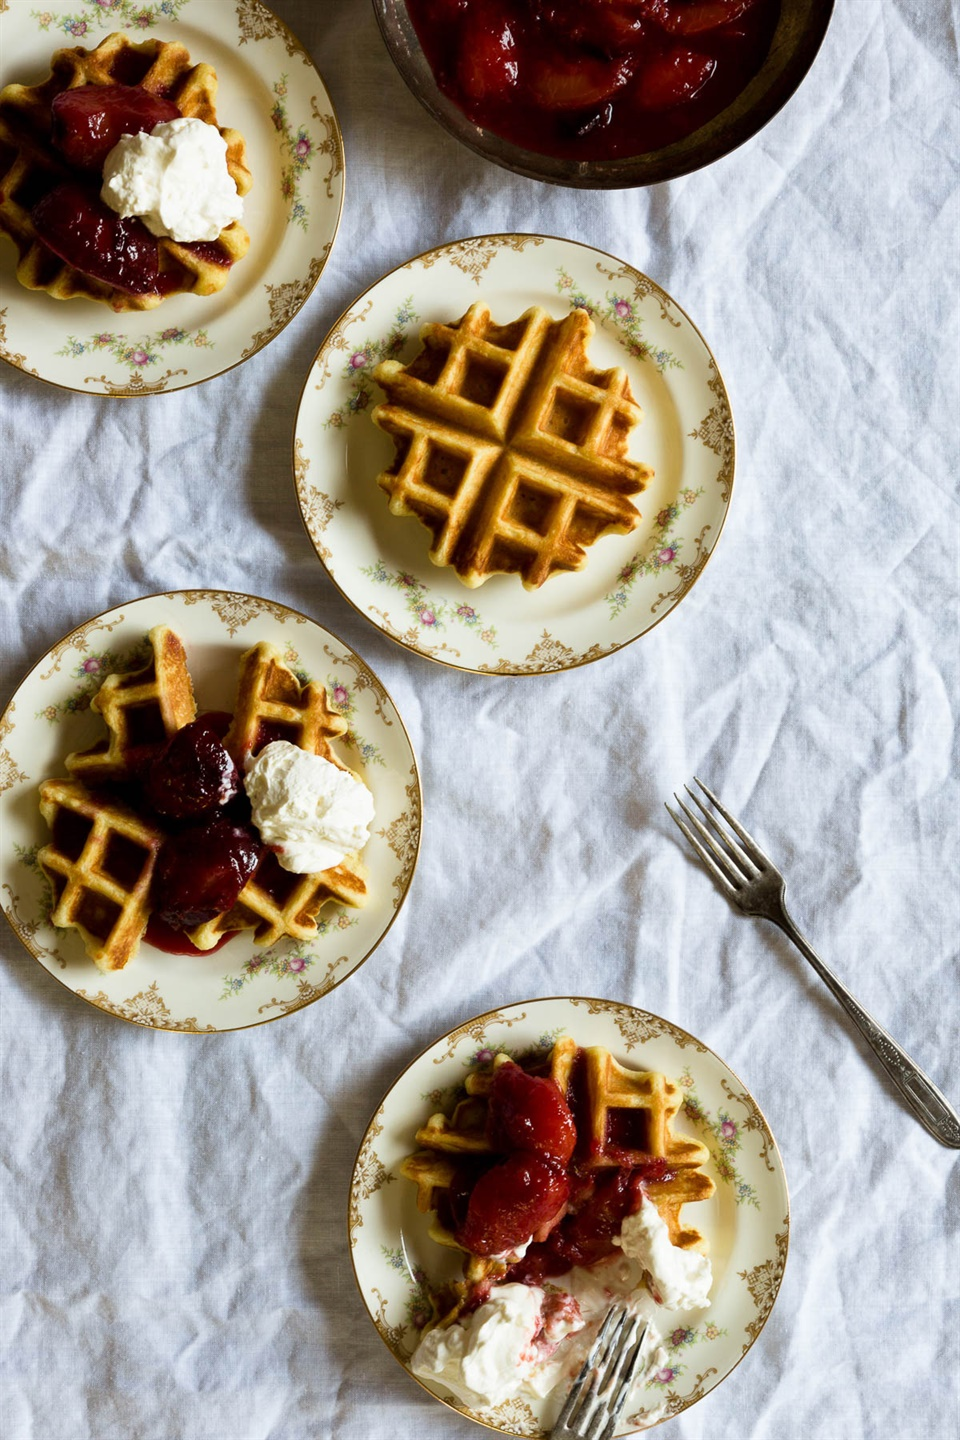 Buttermilk waffles with sweet summer plums